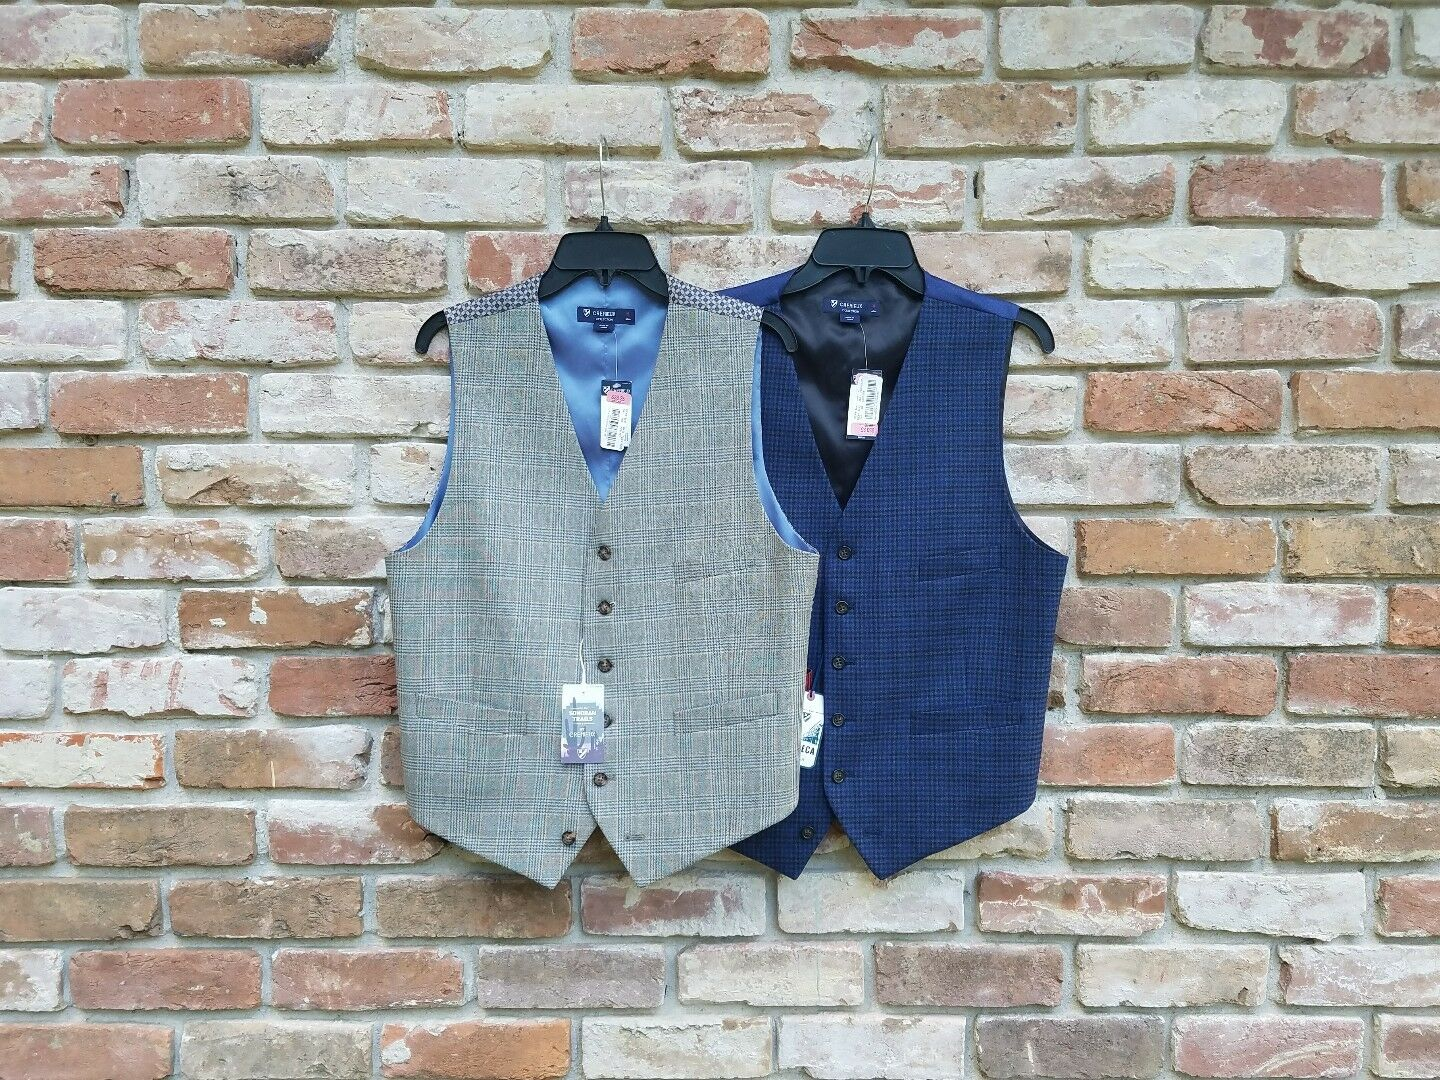 New  CREMIEUX medium [M] suit vest separates dapper accessories